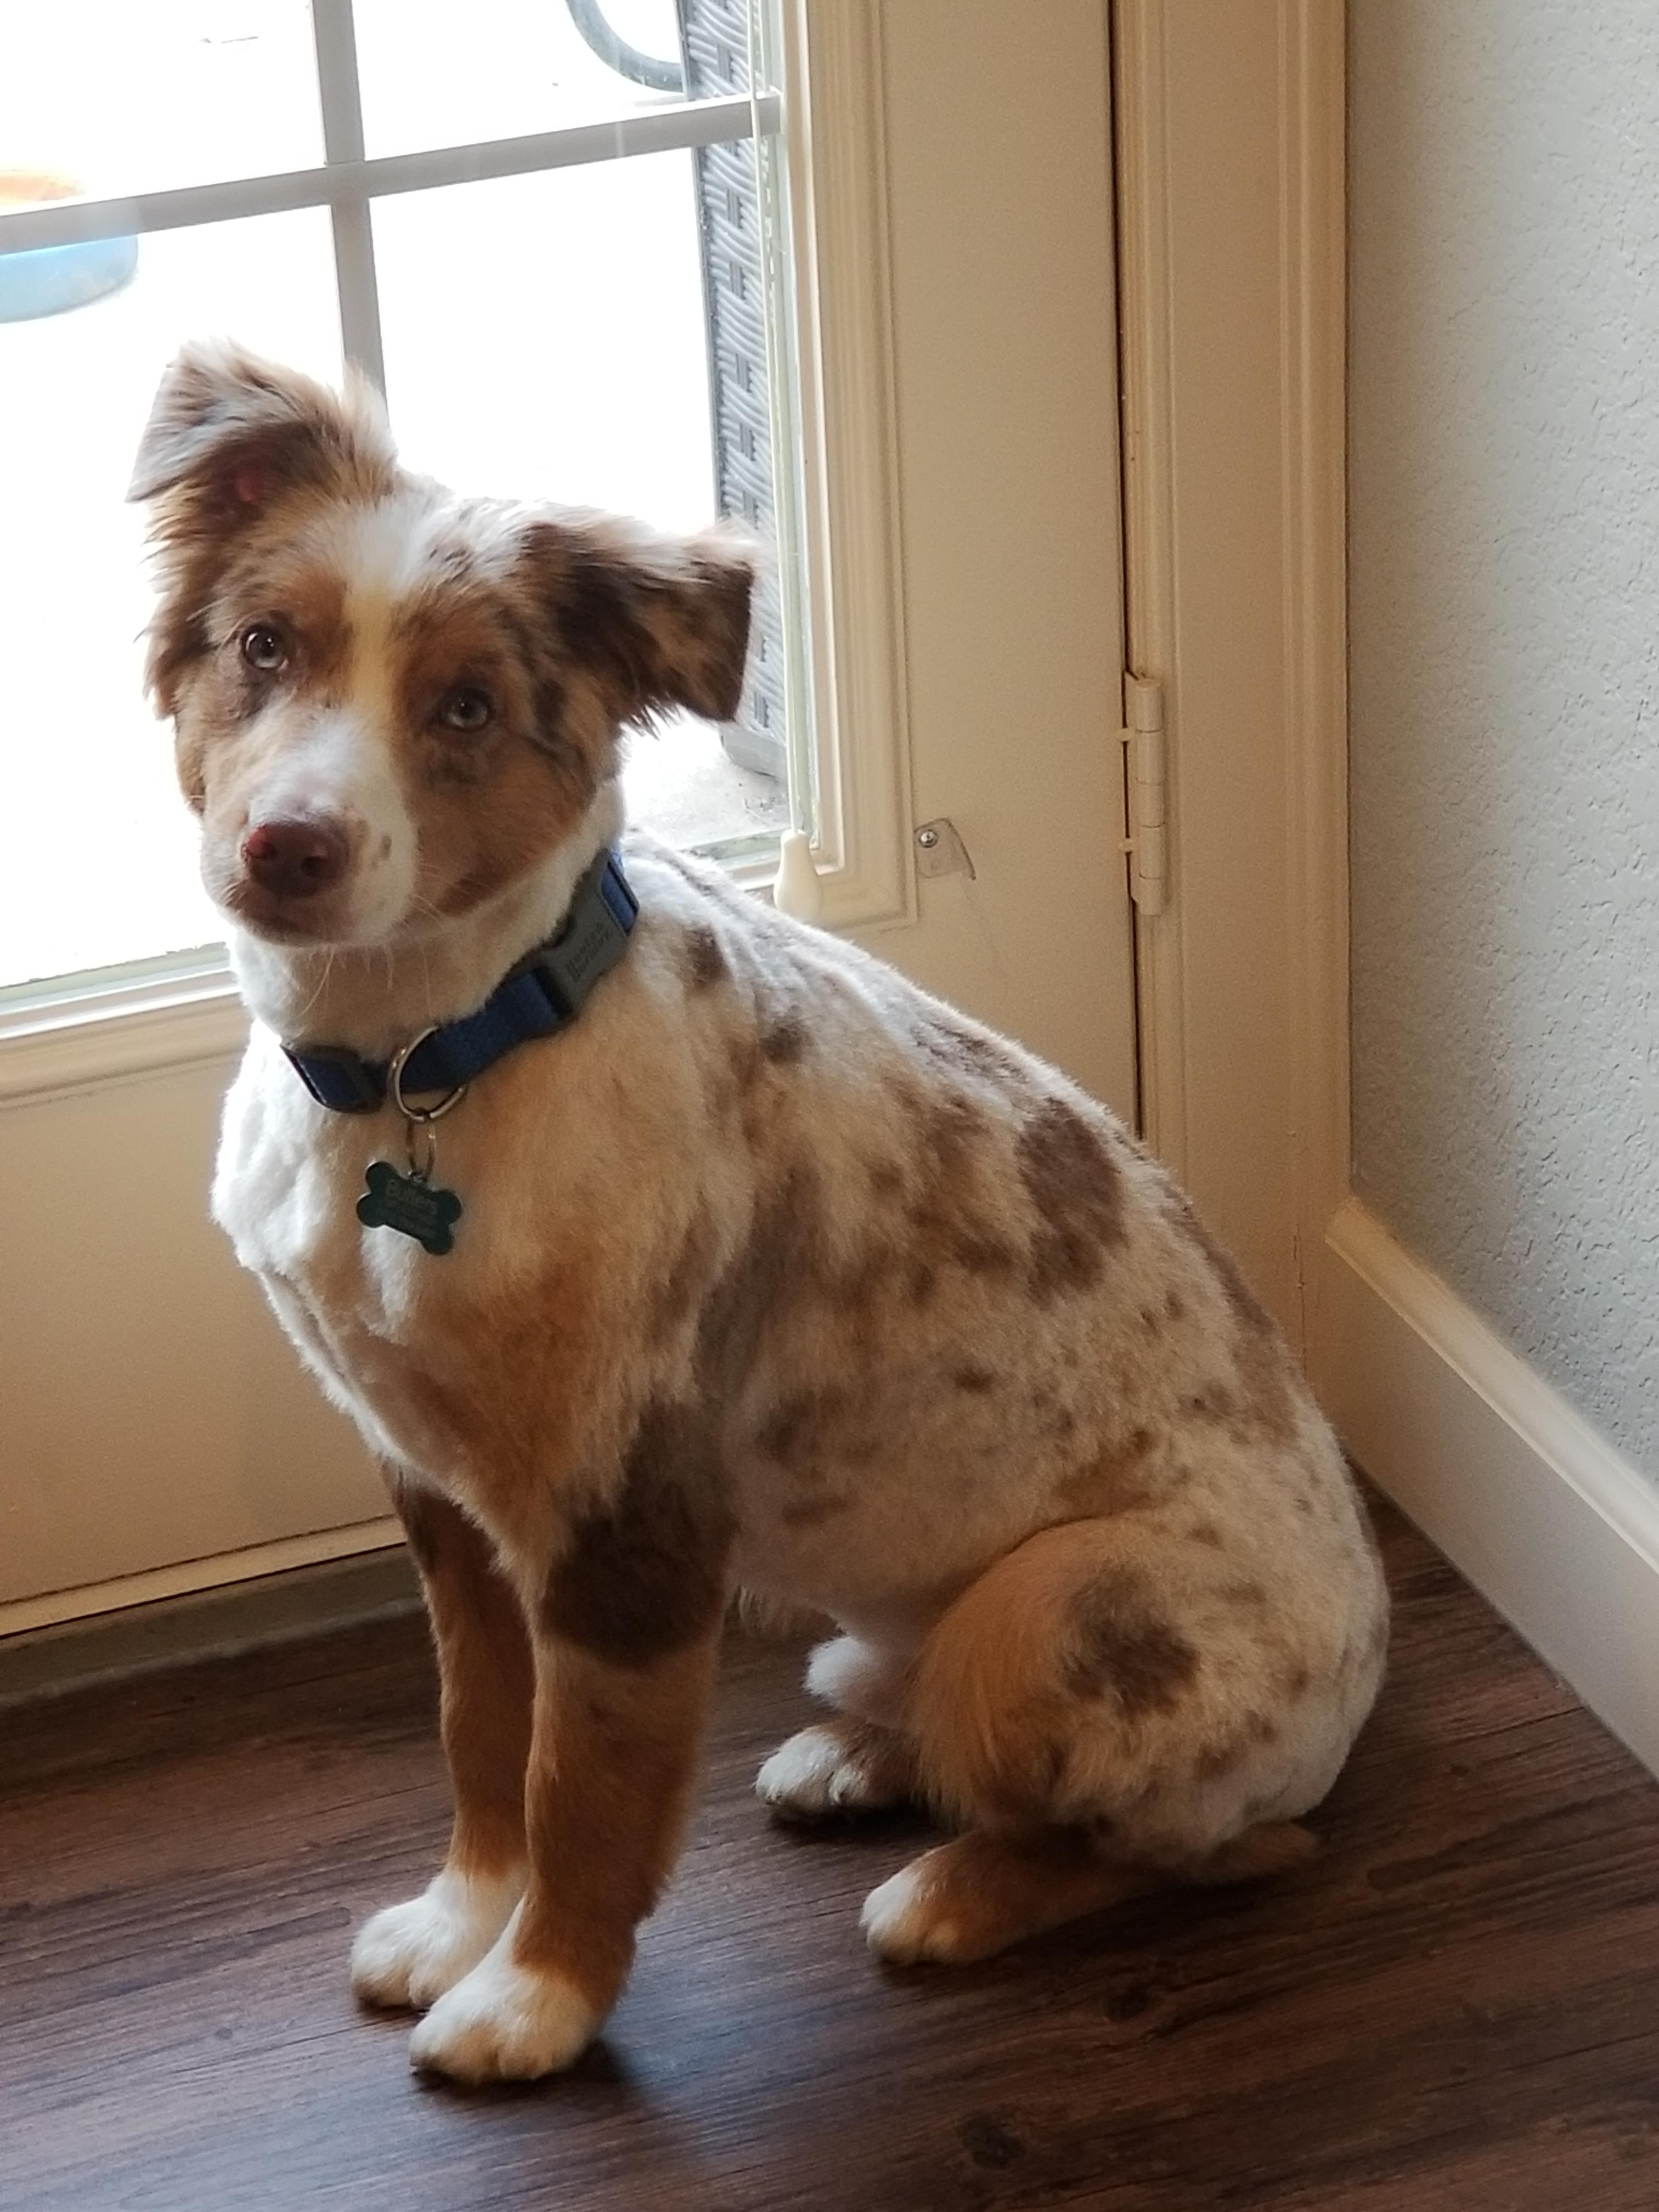 Australian Shepherd Shaved : australian, shepherd, shaved, Typically, Their, Back?, Trimmed, Specifically, Asked, Shaved,